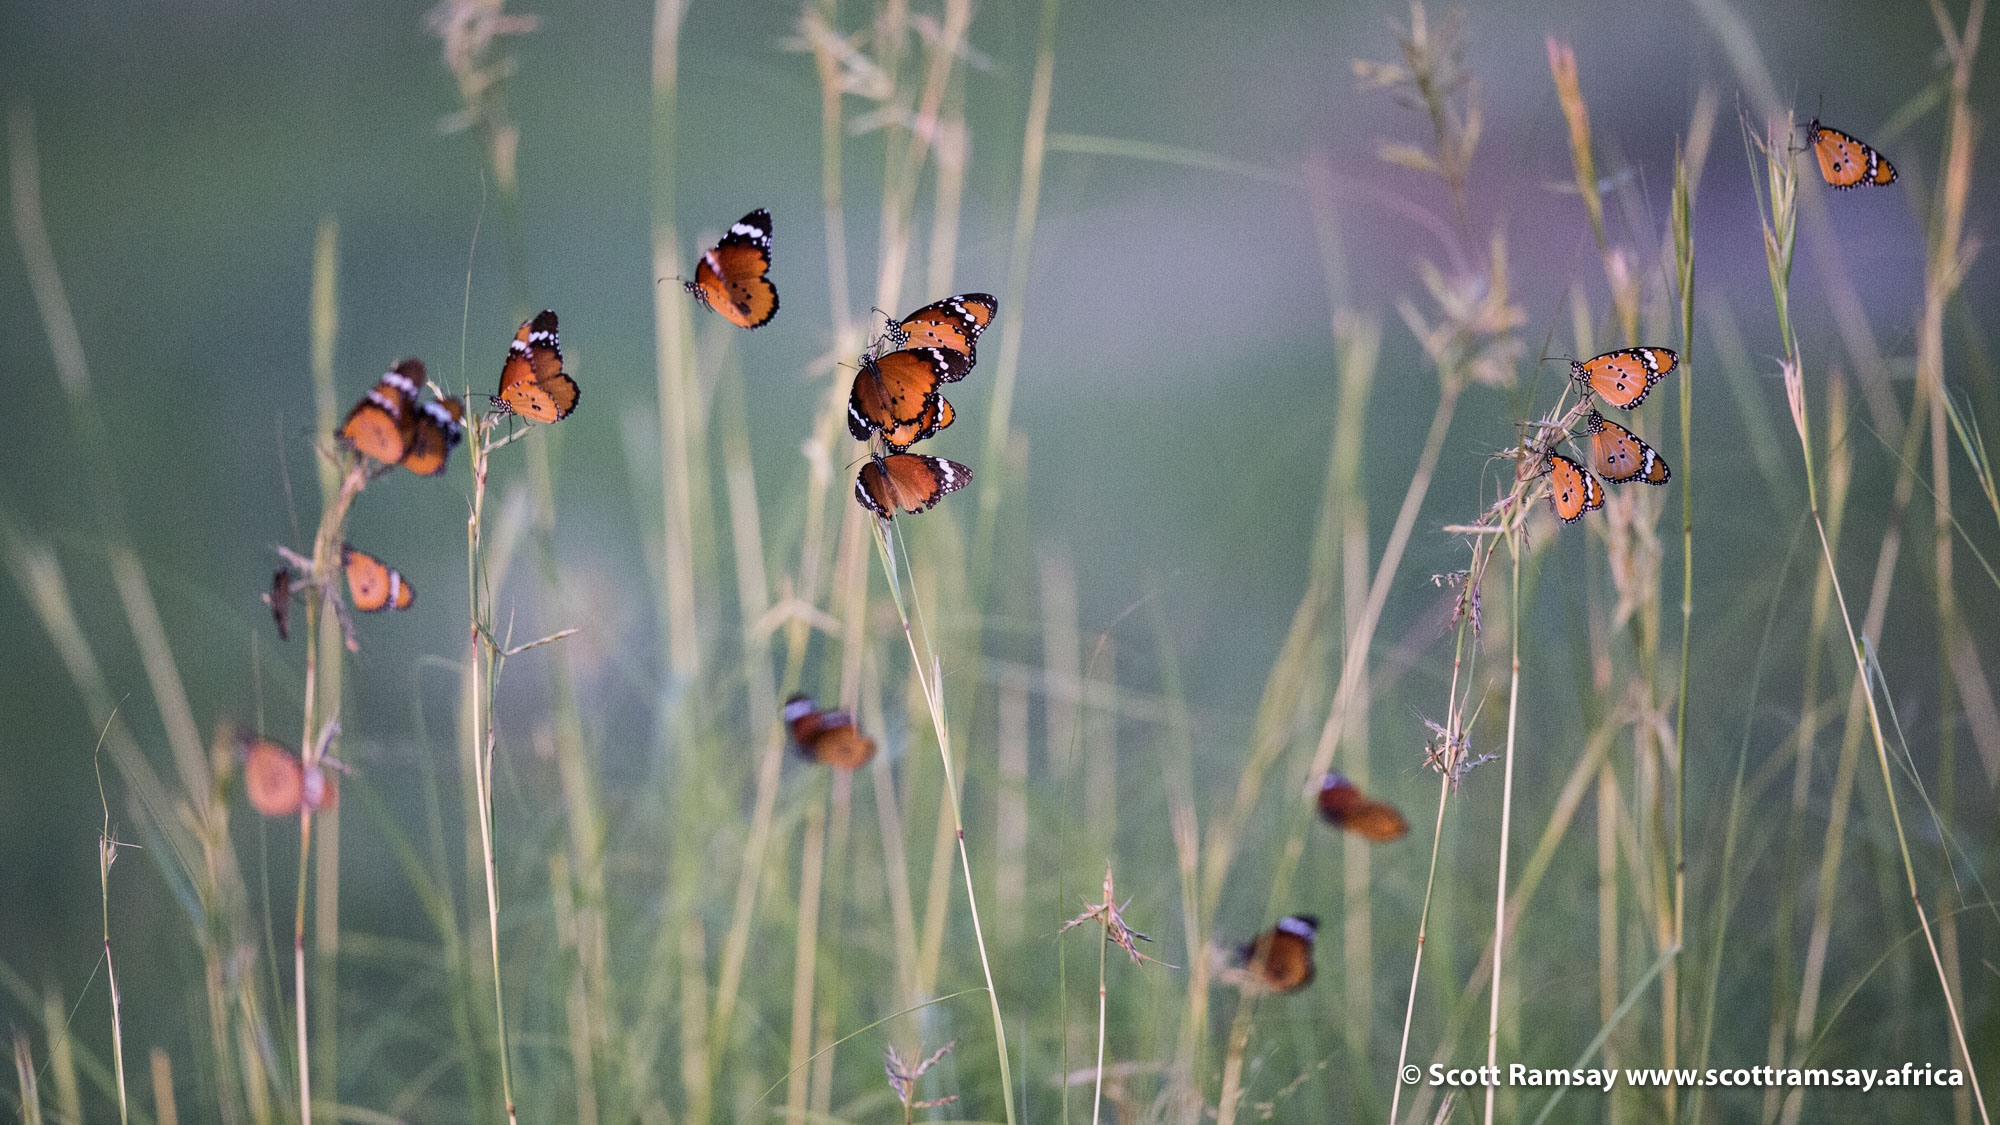 These are African Monarch butterflies (Danaus chrysippus aegypticus), getting ready to roost on some grass stems for the night.